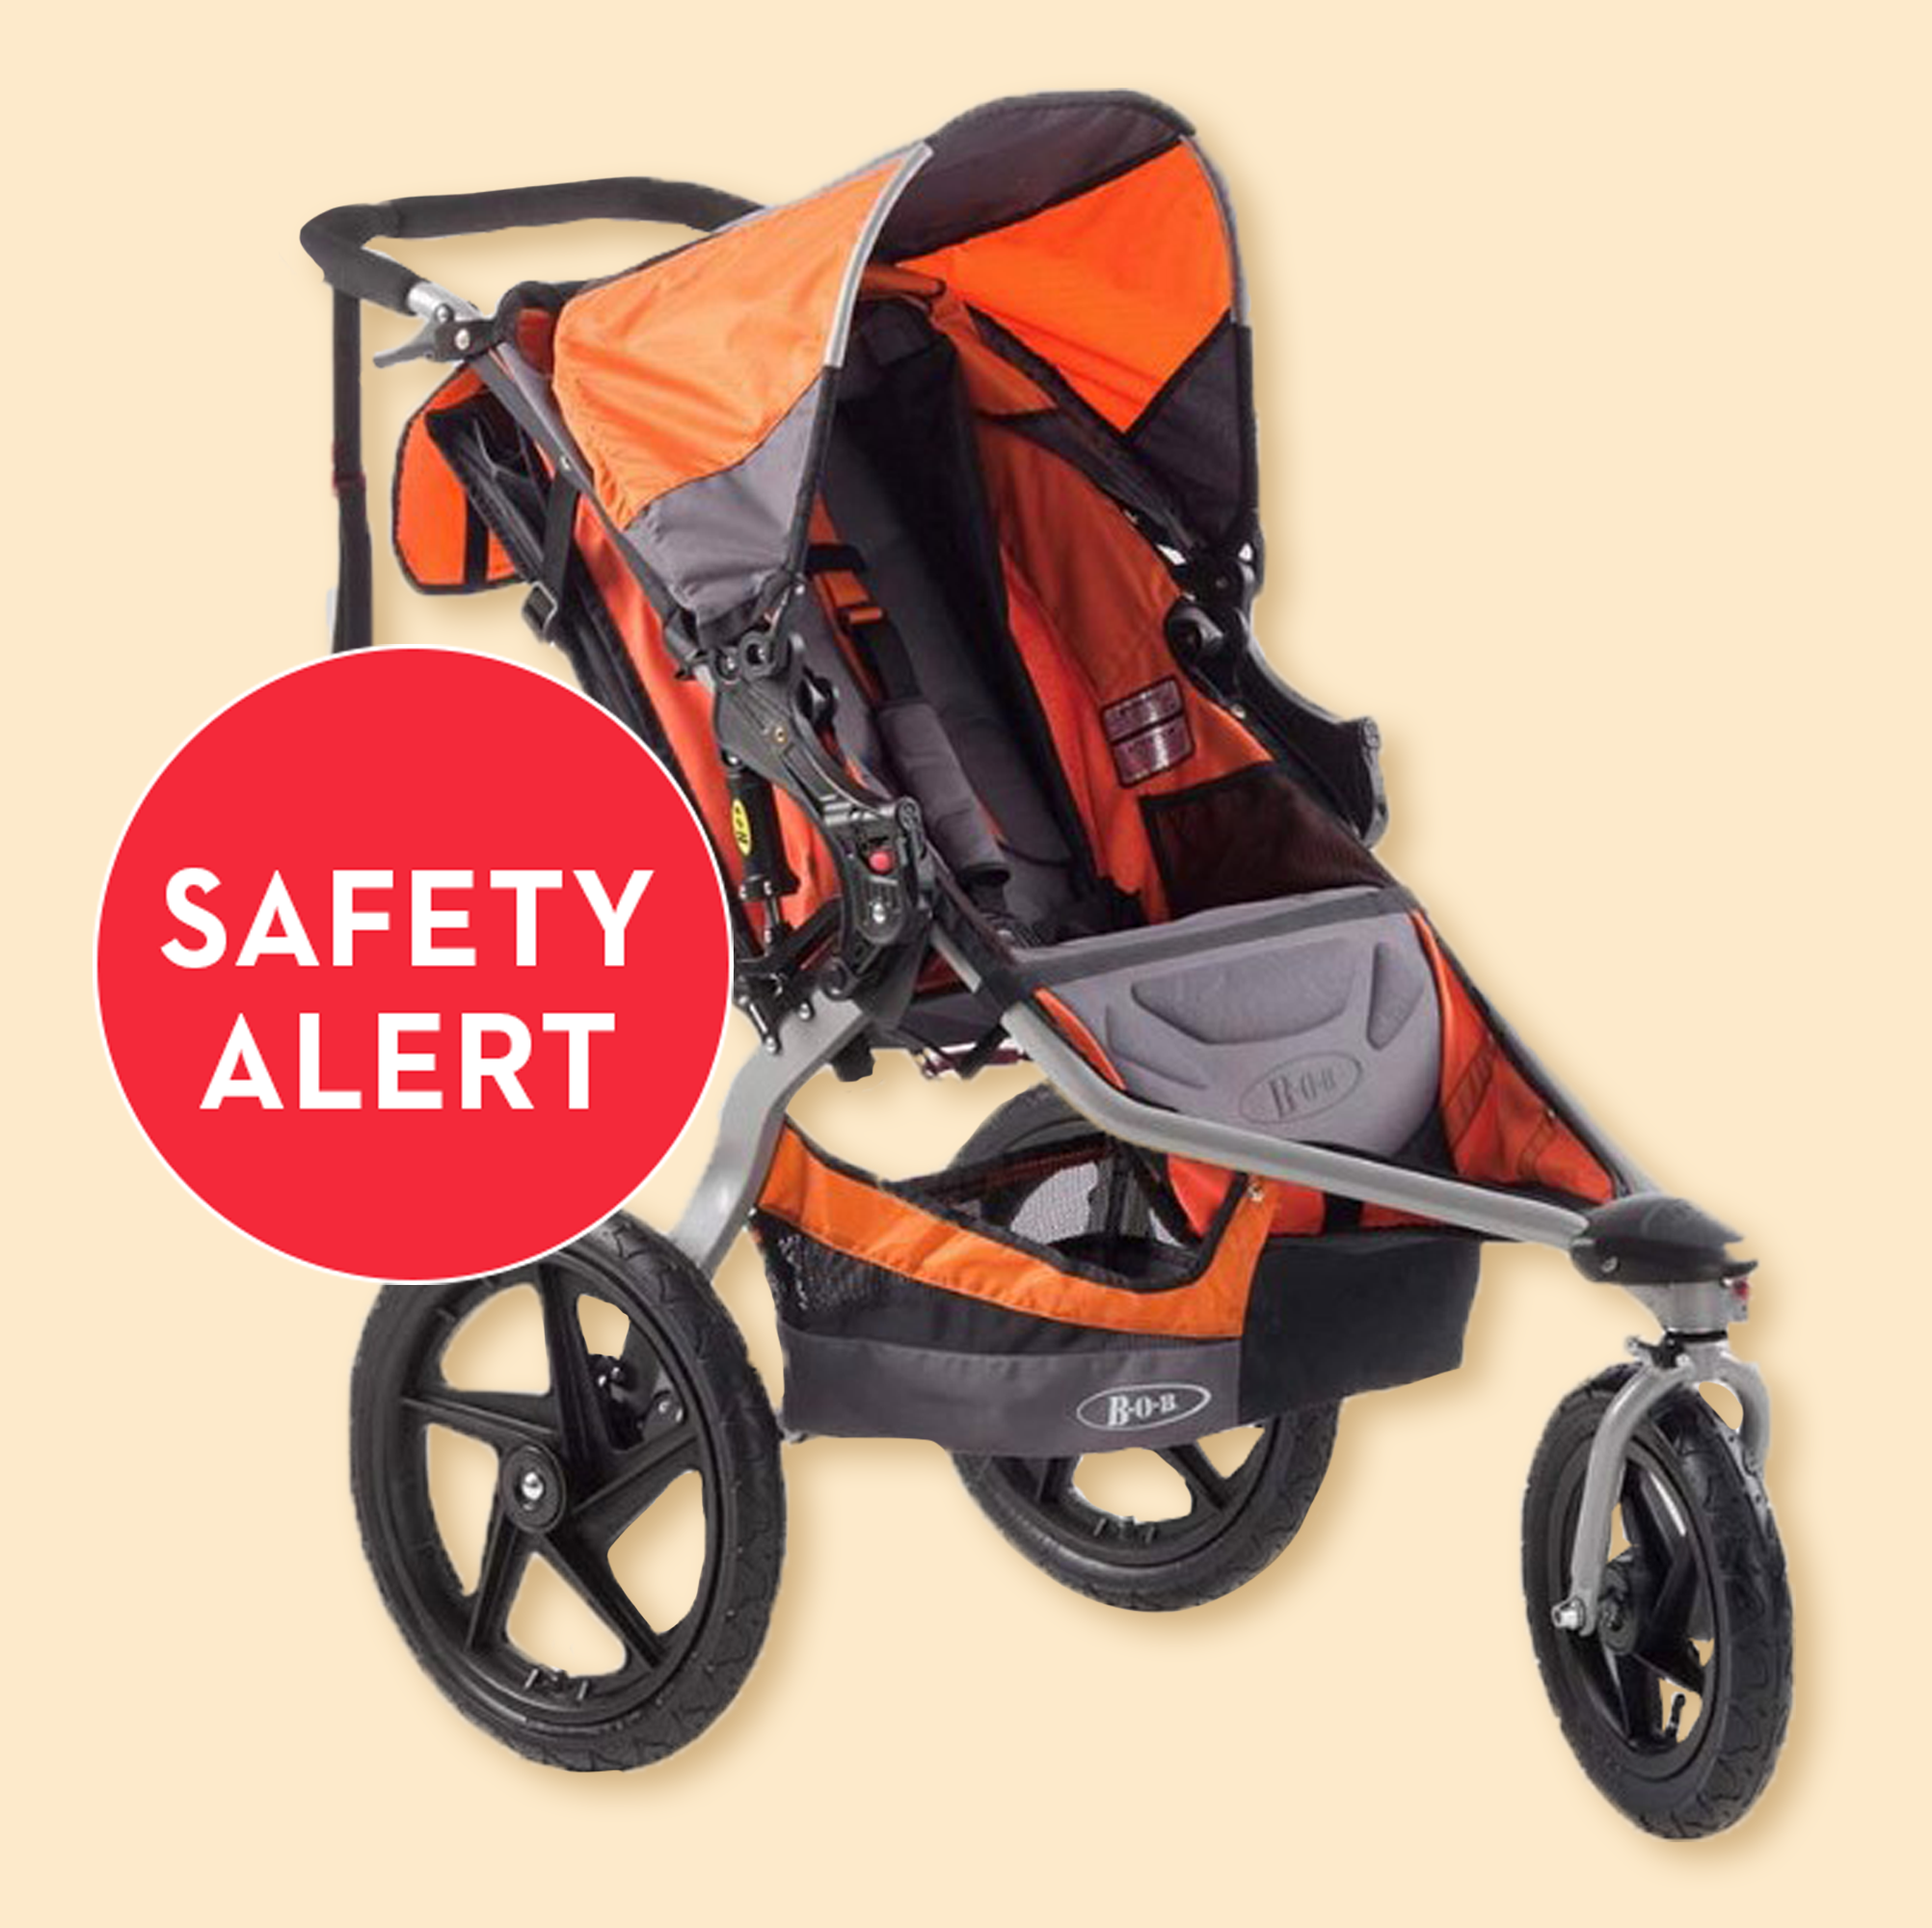 Everything About the BOB Jogging Stroller Recall Controversy, Explained